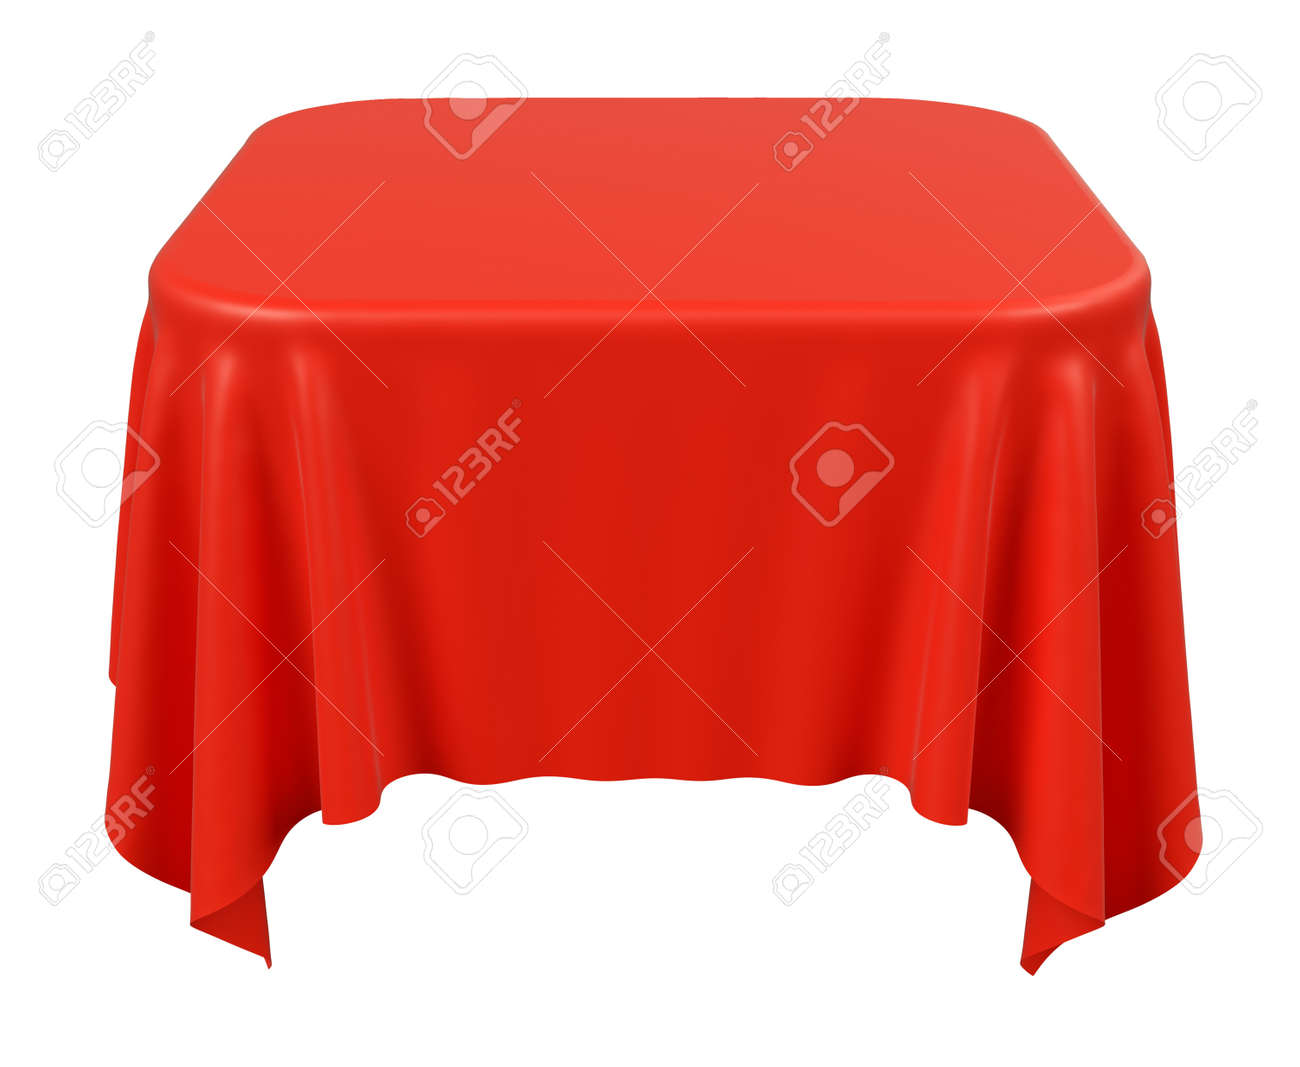 Illustration   Red Square Table Cloth With Rounded Corners Isolated On  White, 3d Illustration